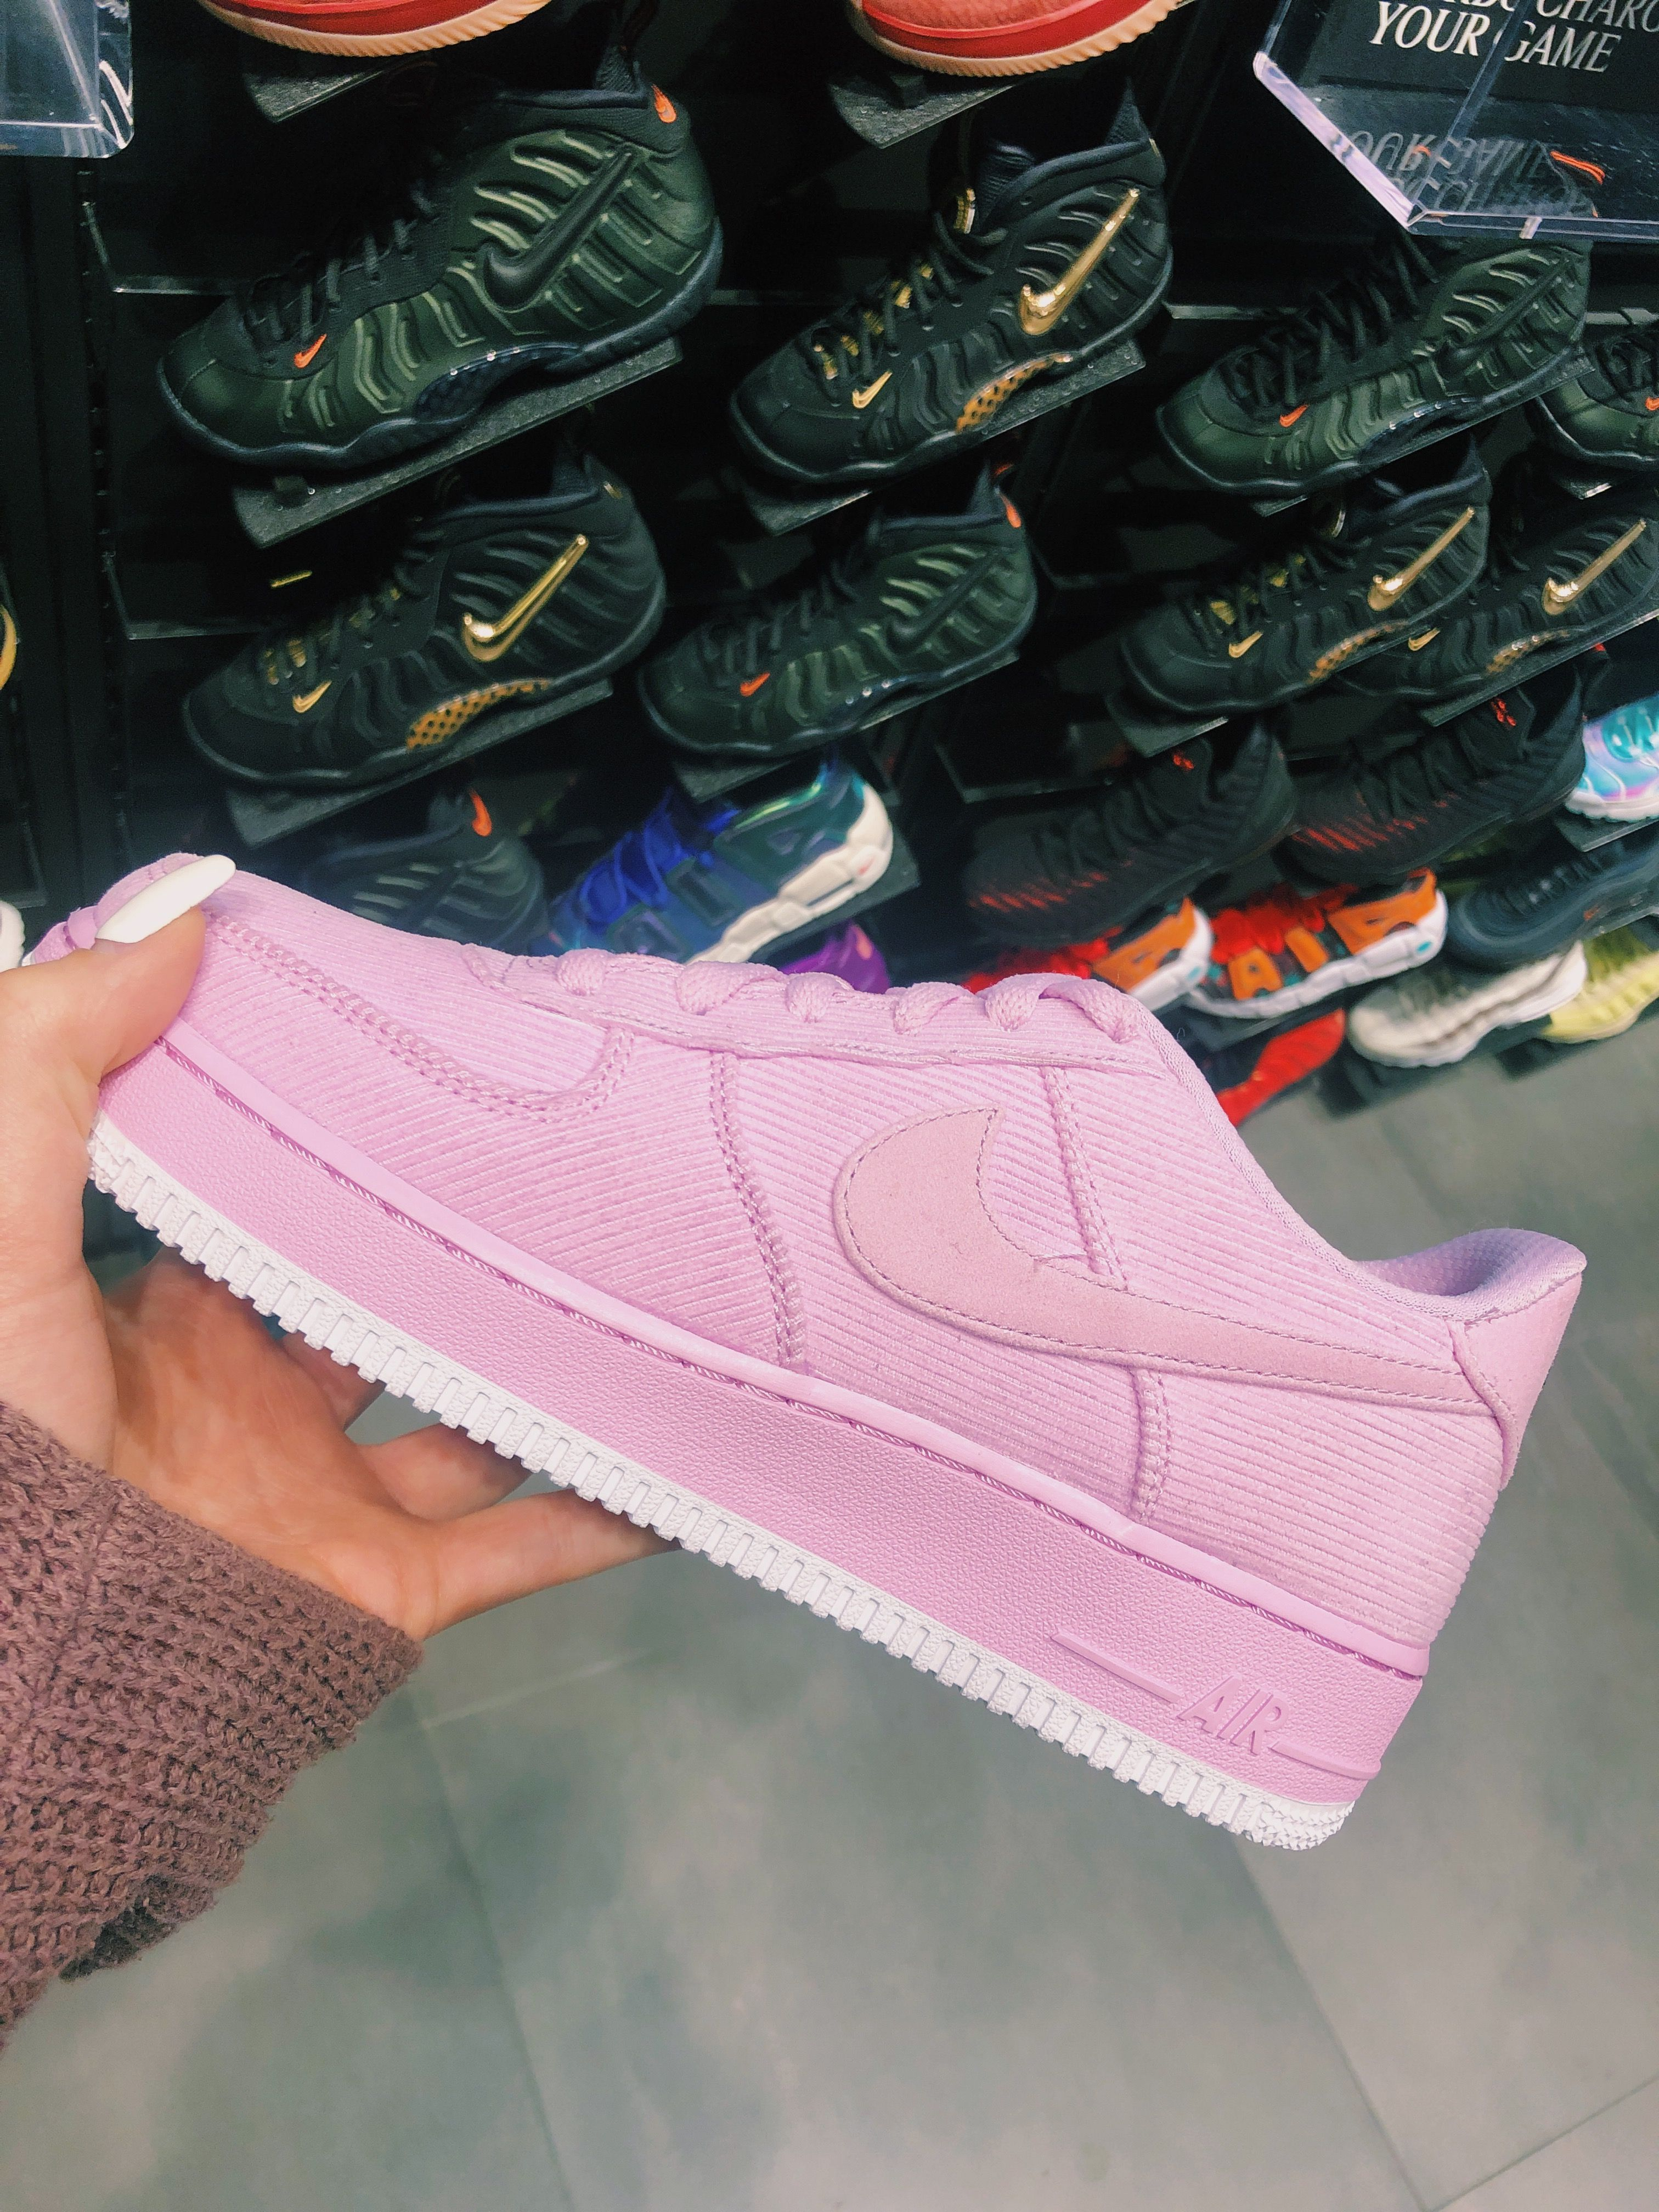 Pin by Luli on Shoes in 2019 | Nike shoes, Shoes sandals